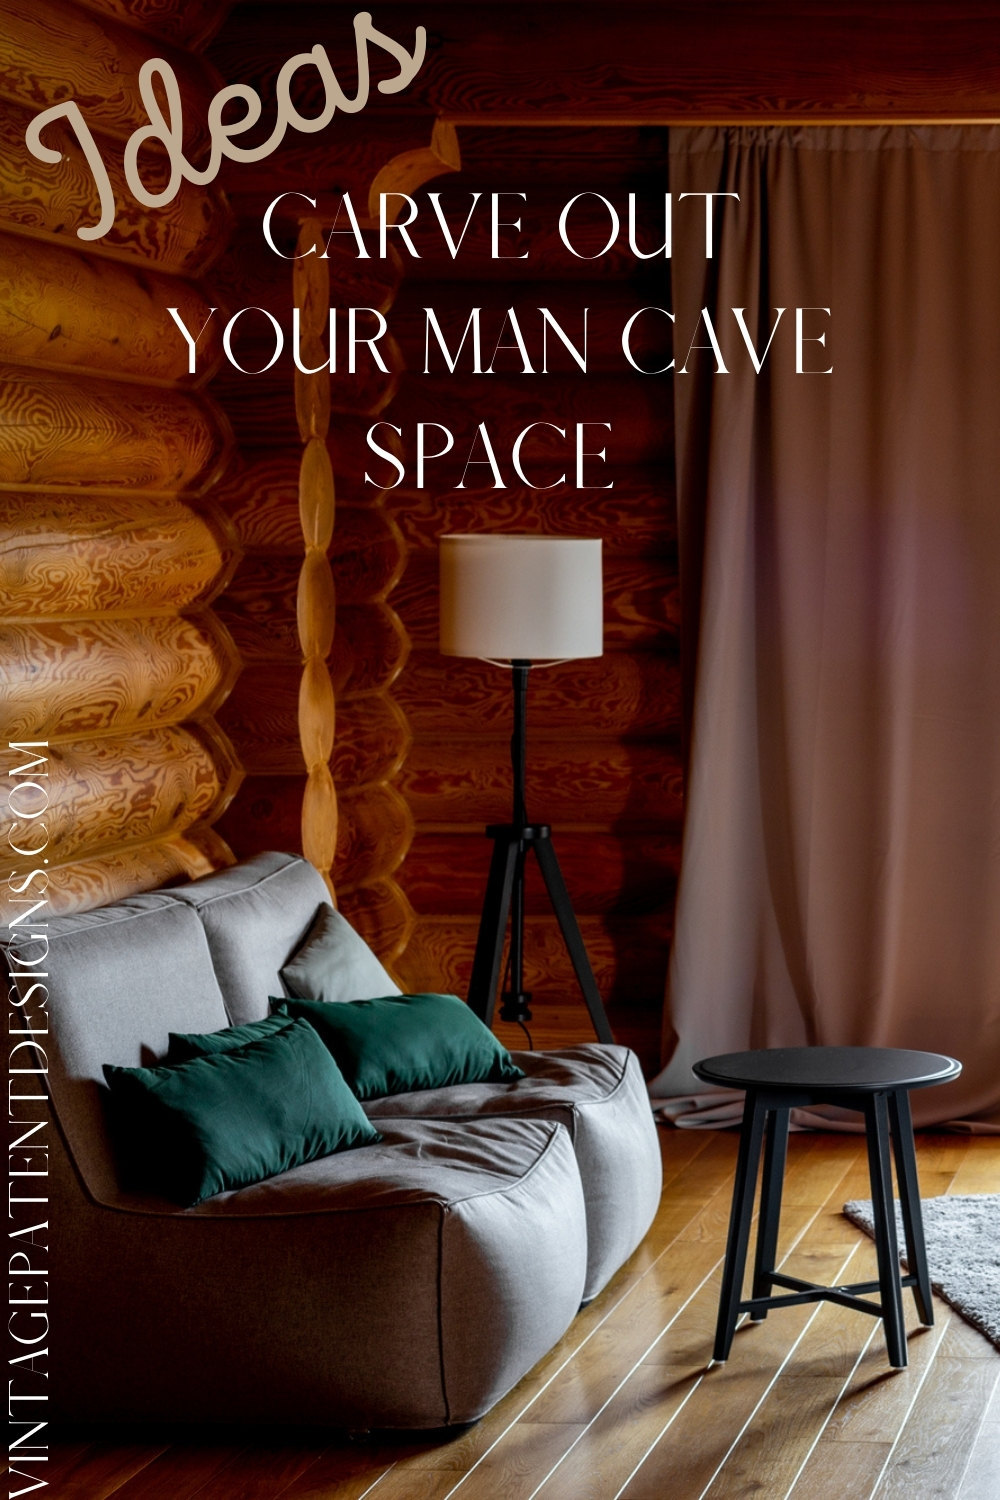 Carve out your man cave space - ideas to make it truly yours